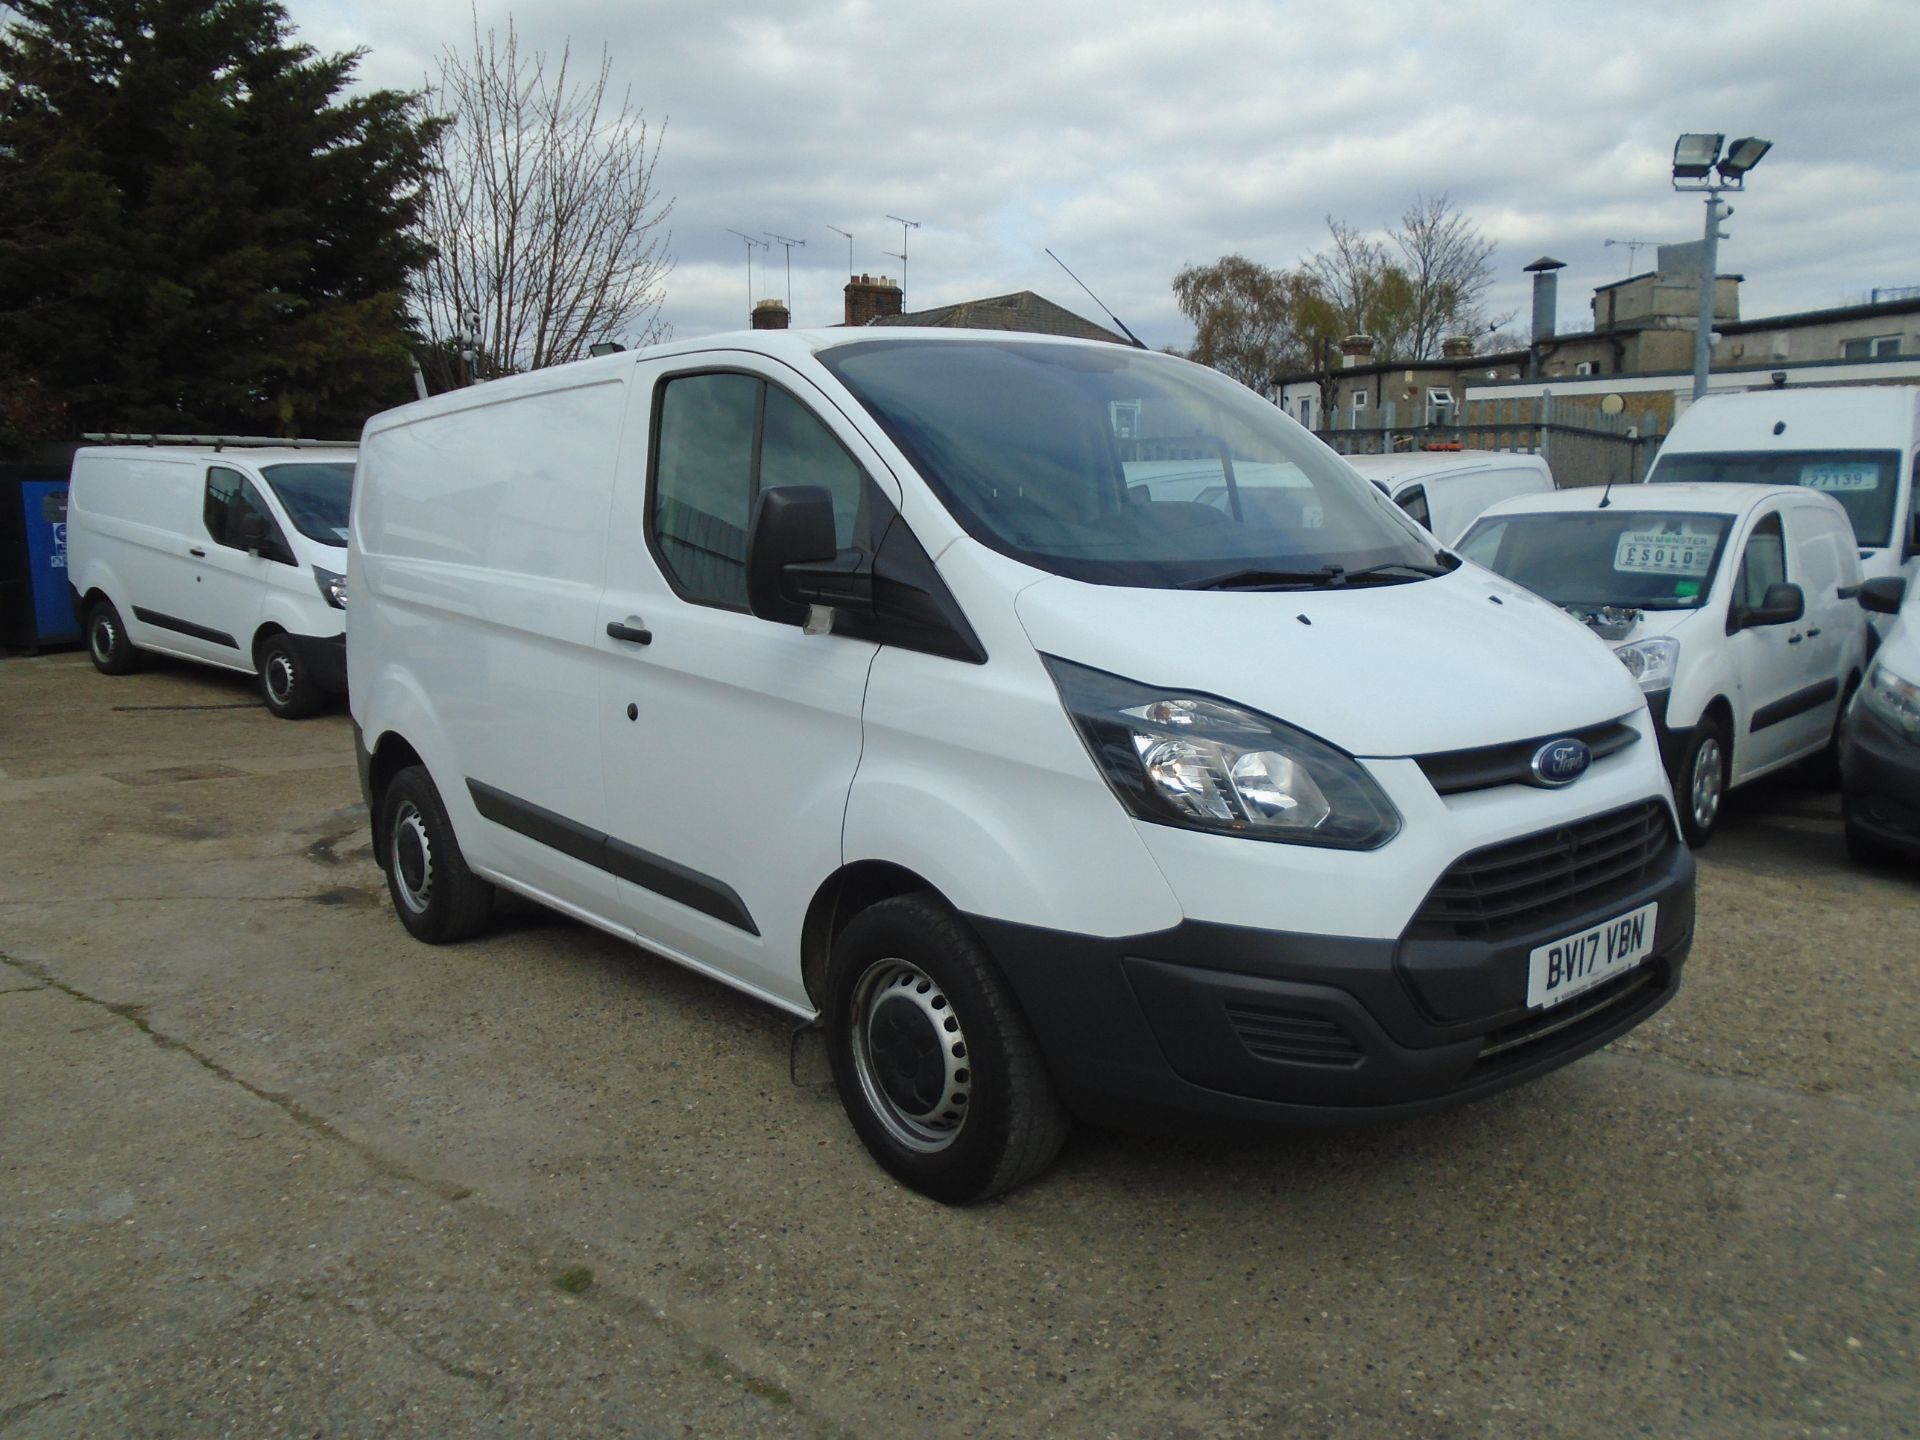 2017 Ford Transit Custom 2.0 Tdci 105Ps Low Roof Van (BV17VBN)